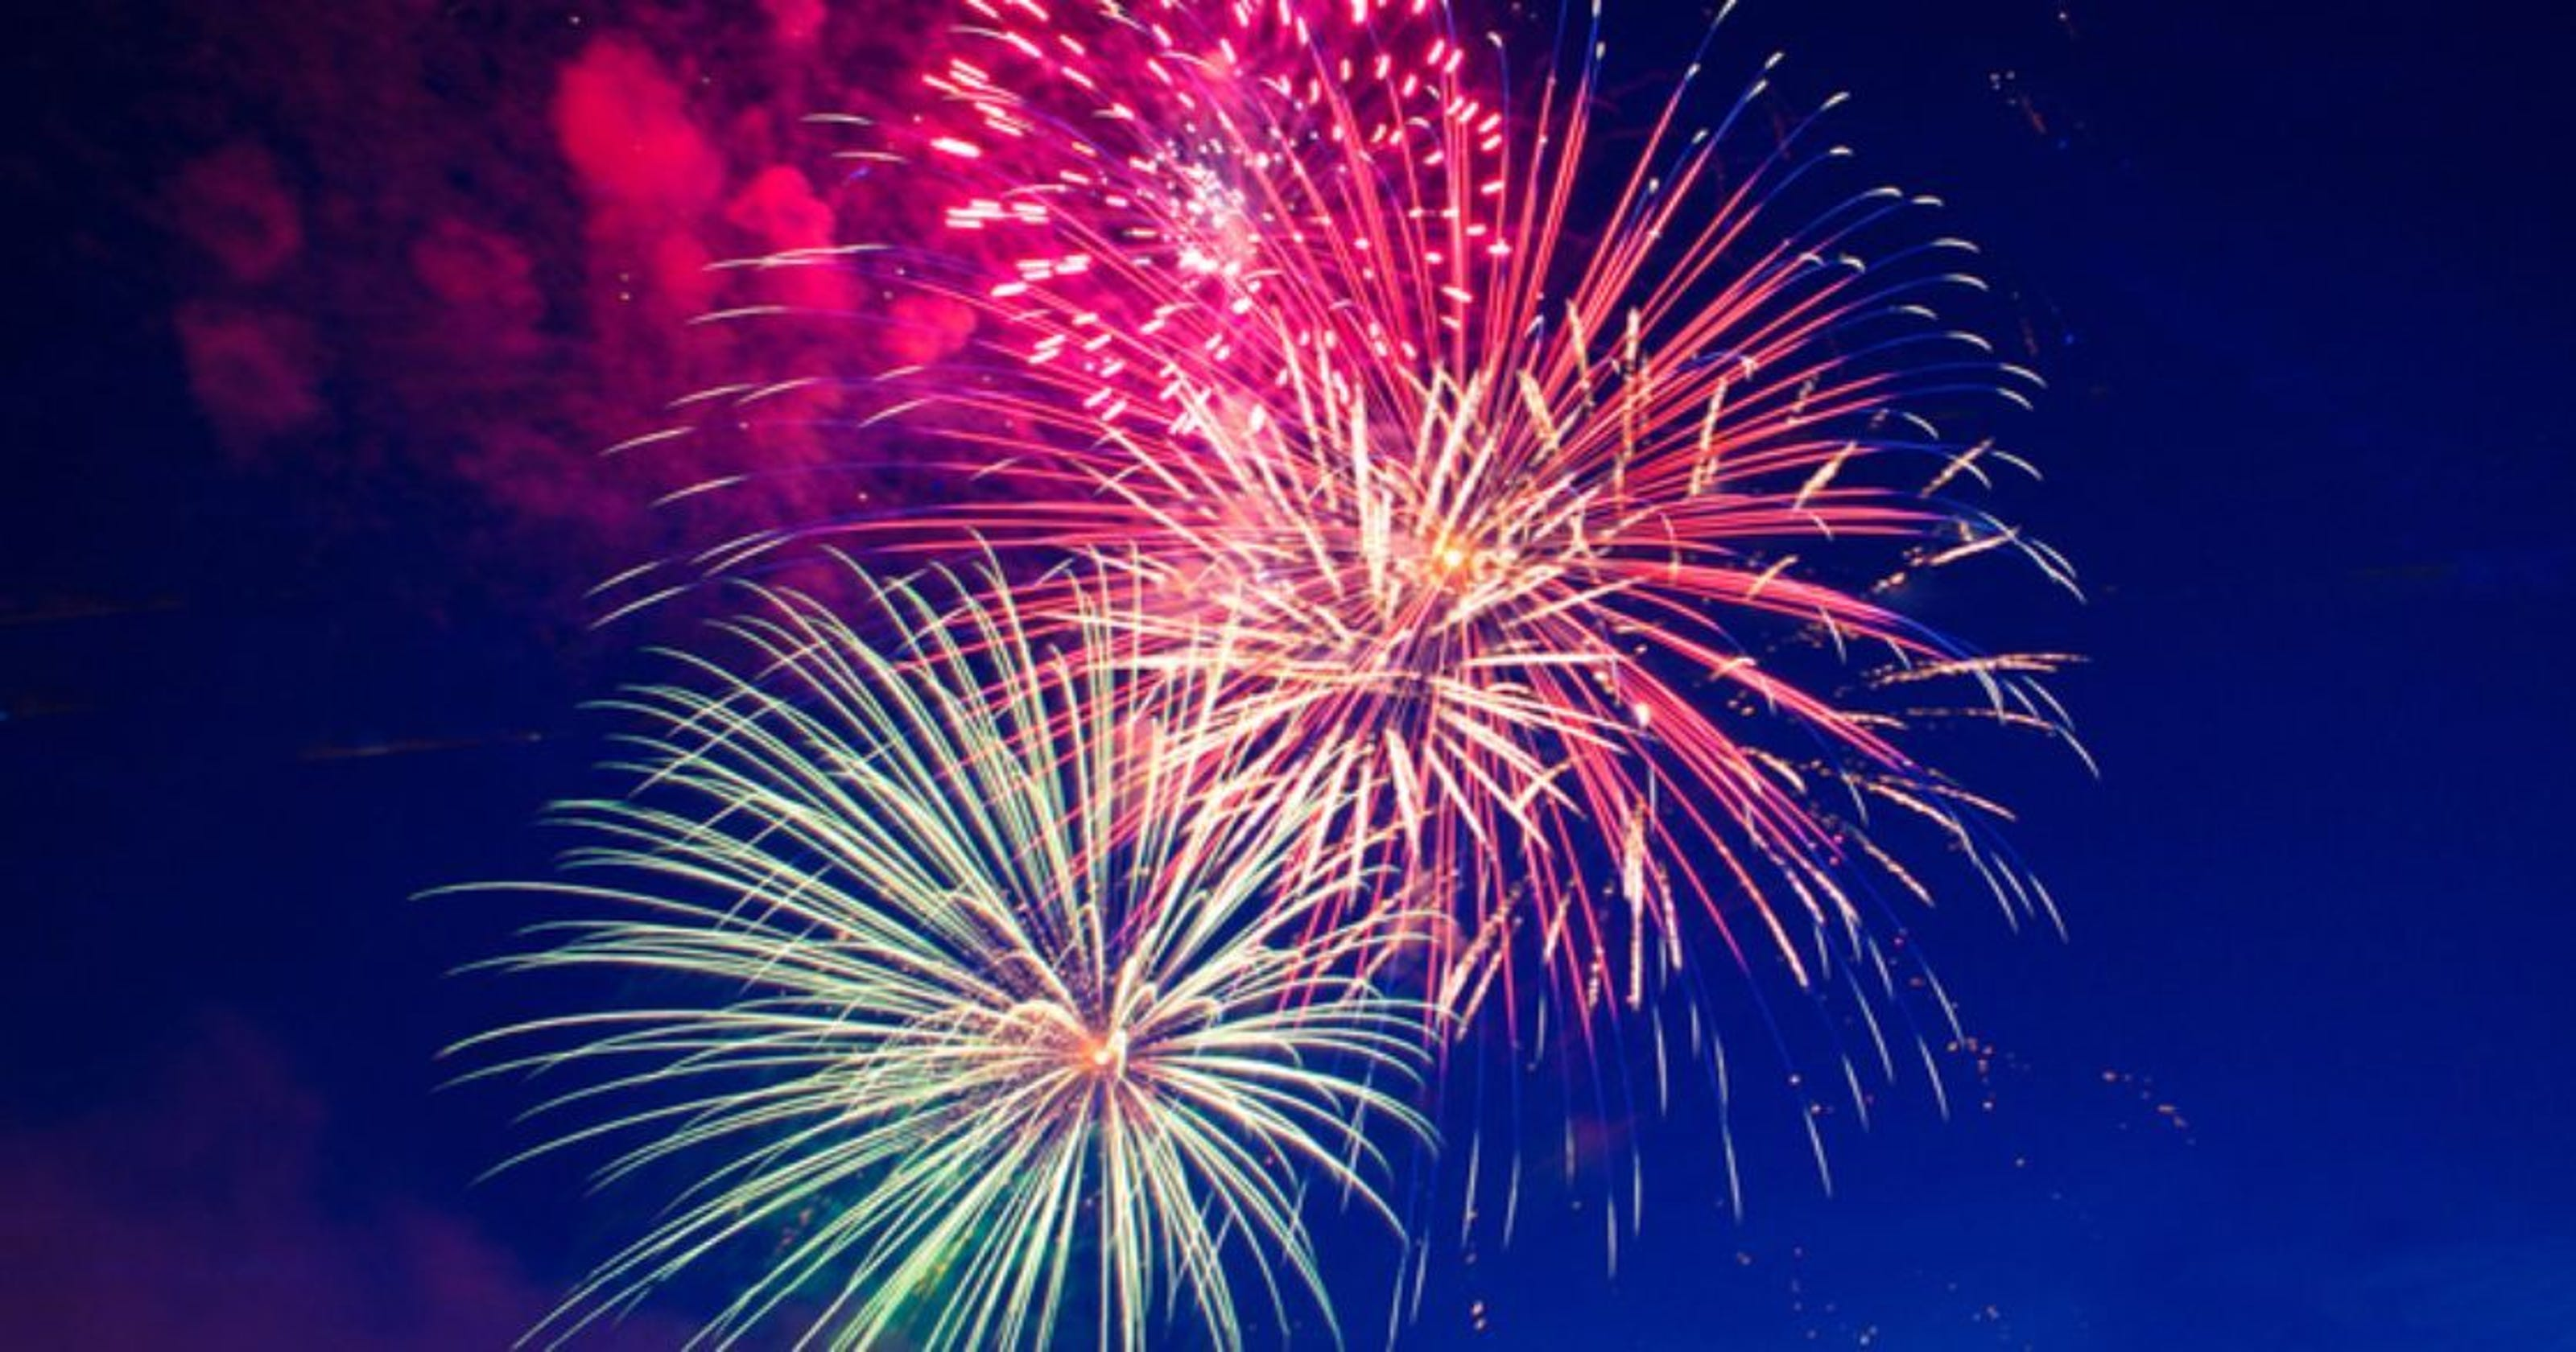 Indiana man killed in Kentucky fireworks accident